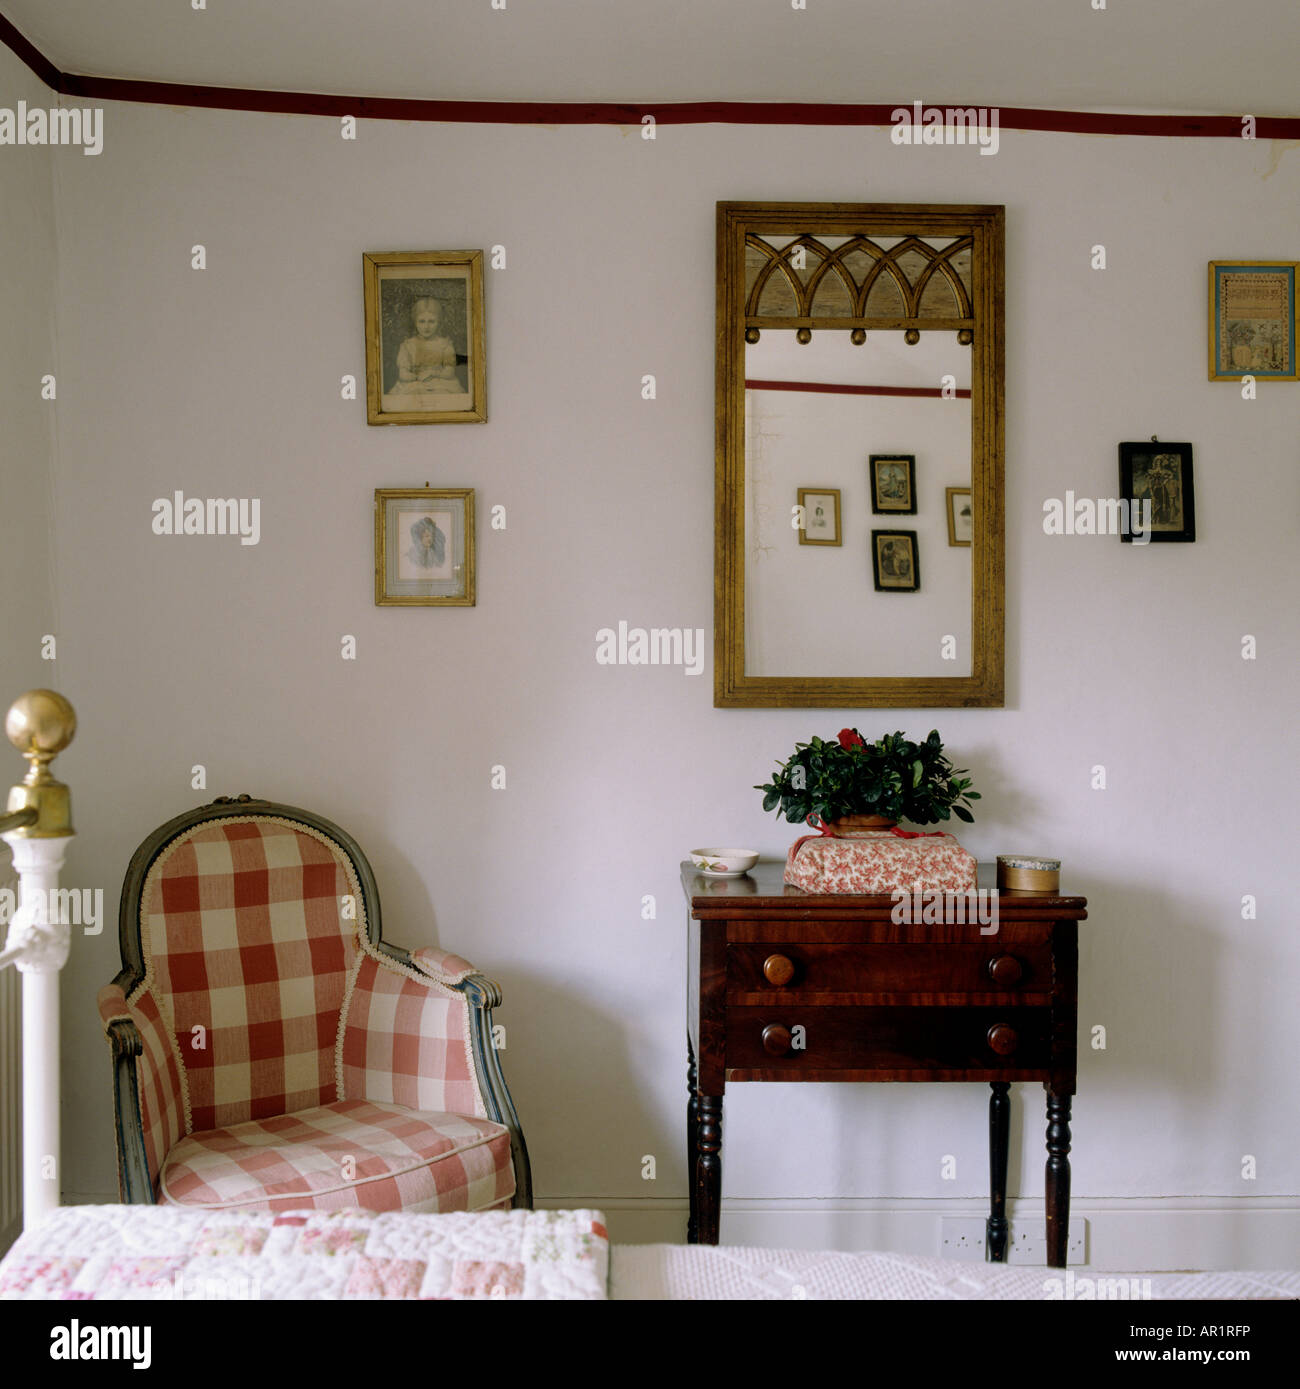 detail of a bedroom in a Wiltshire country house - Stock Image